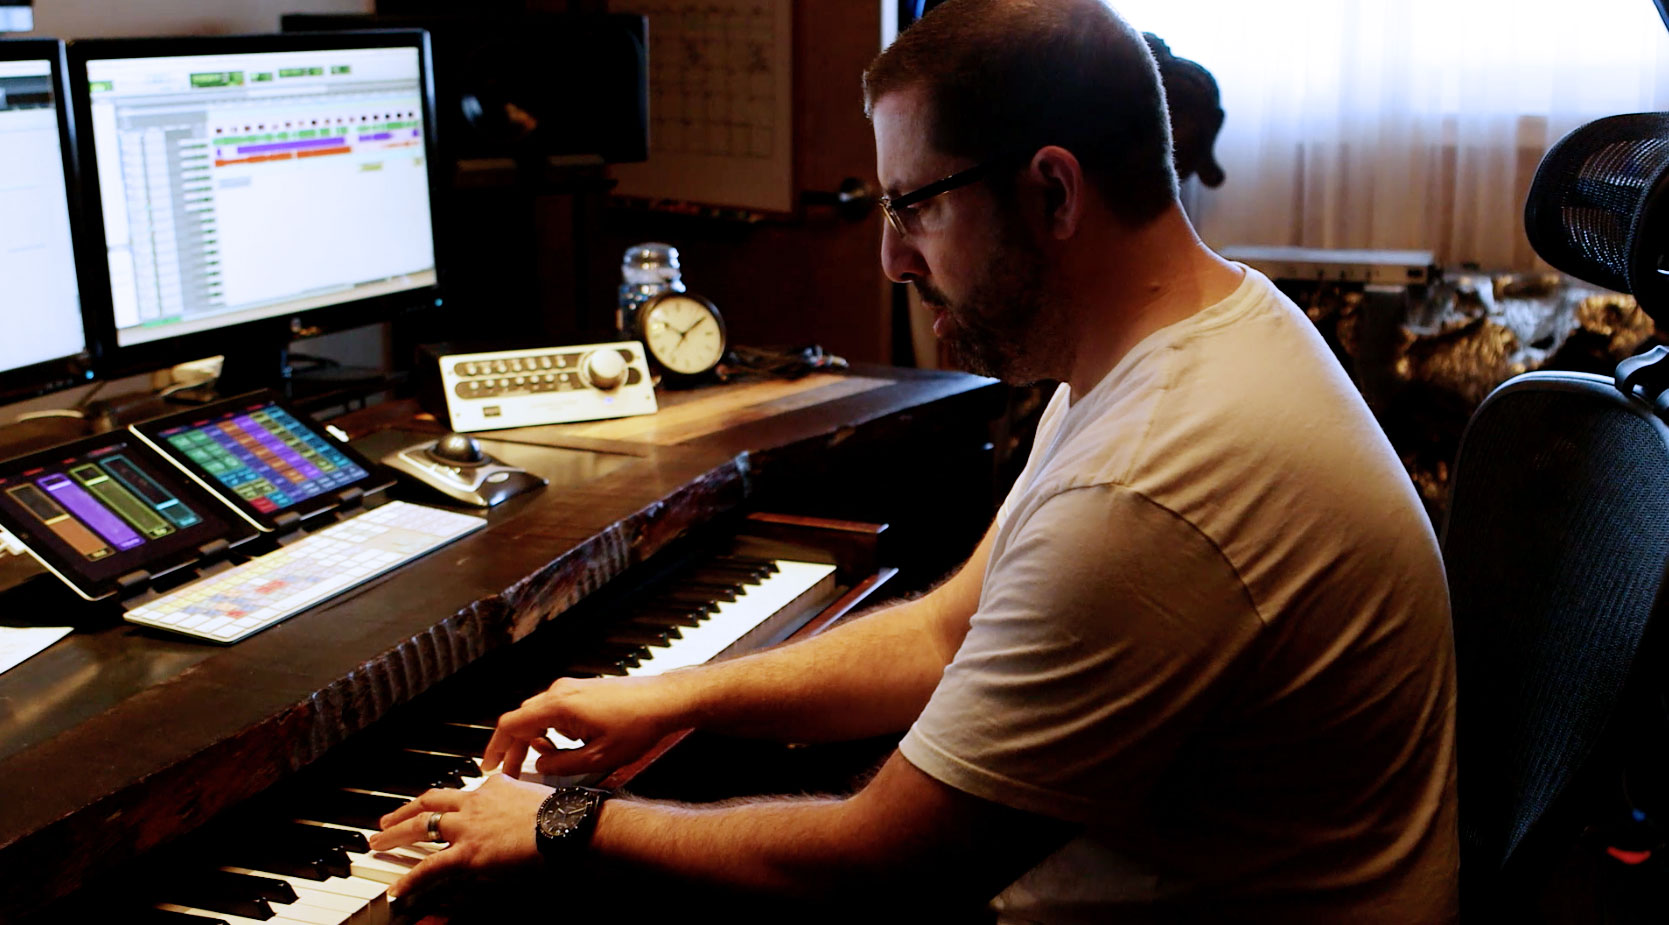 Music Composers Use System 5 to Deliver Compelling Scores